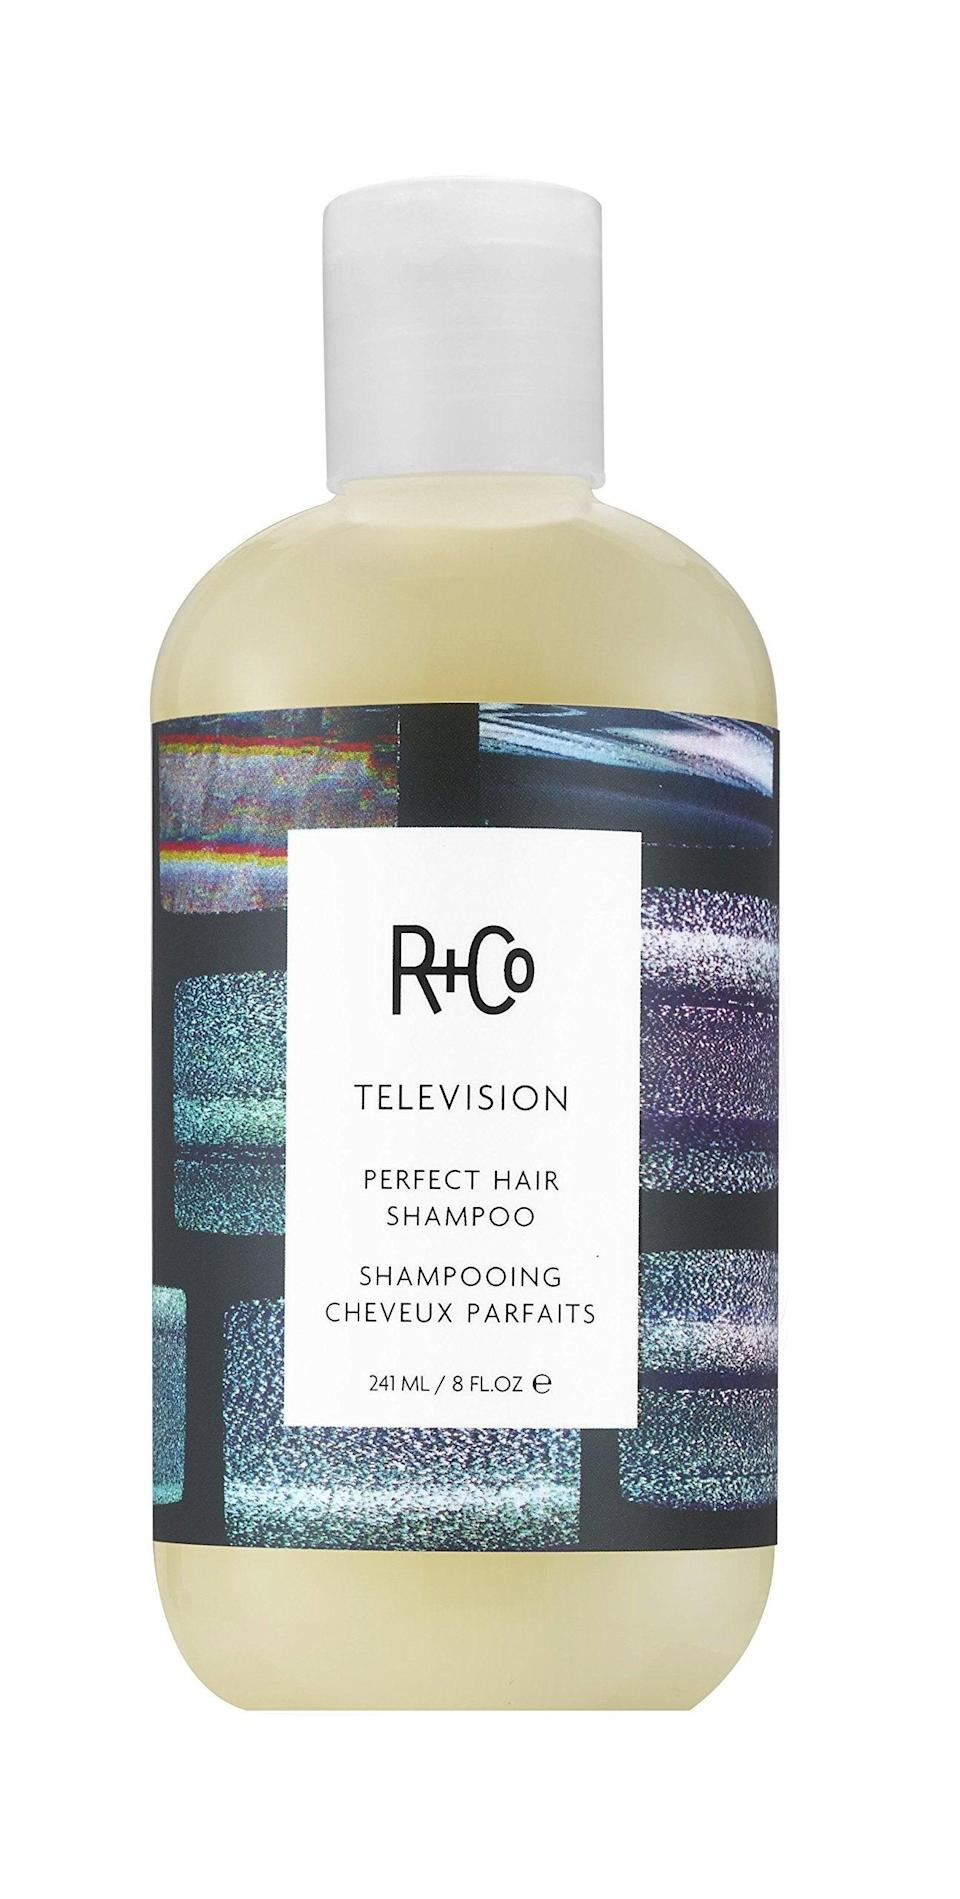 """<h3>R+Co Television Perfect Hair Shampoo</h3><br>Yes — you can find this salon-approved brand R+Co on Amazon! Our beauty editor's pick is the Television shampoo, which leaves your hair looking and feeling Pantene commercial-soft after just one use.<br><br><strong>R+Co</strong> Television Perfect Hair Shampoo, $, available at <a href=""""https://amzn.to/2KdgwKP#locklink"""" rel=""""nofollow noopener"""" target=""""_blank"""" data-ylk=""""slk:Amazon"""" class=""""link rapid-noclick-resp"""">Amazon</a>"""